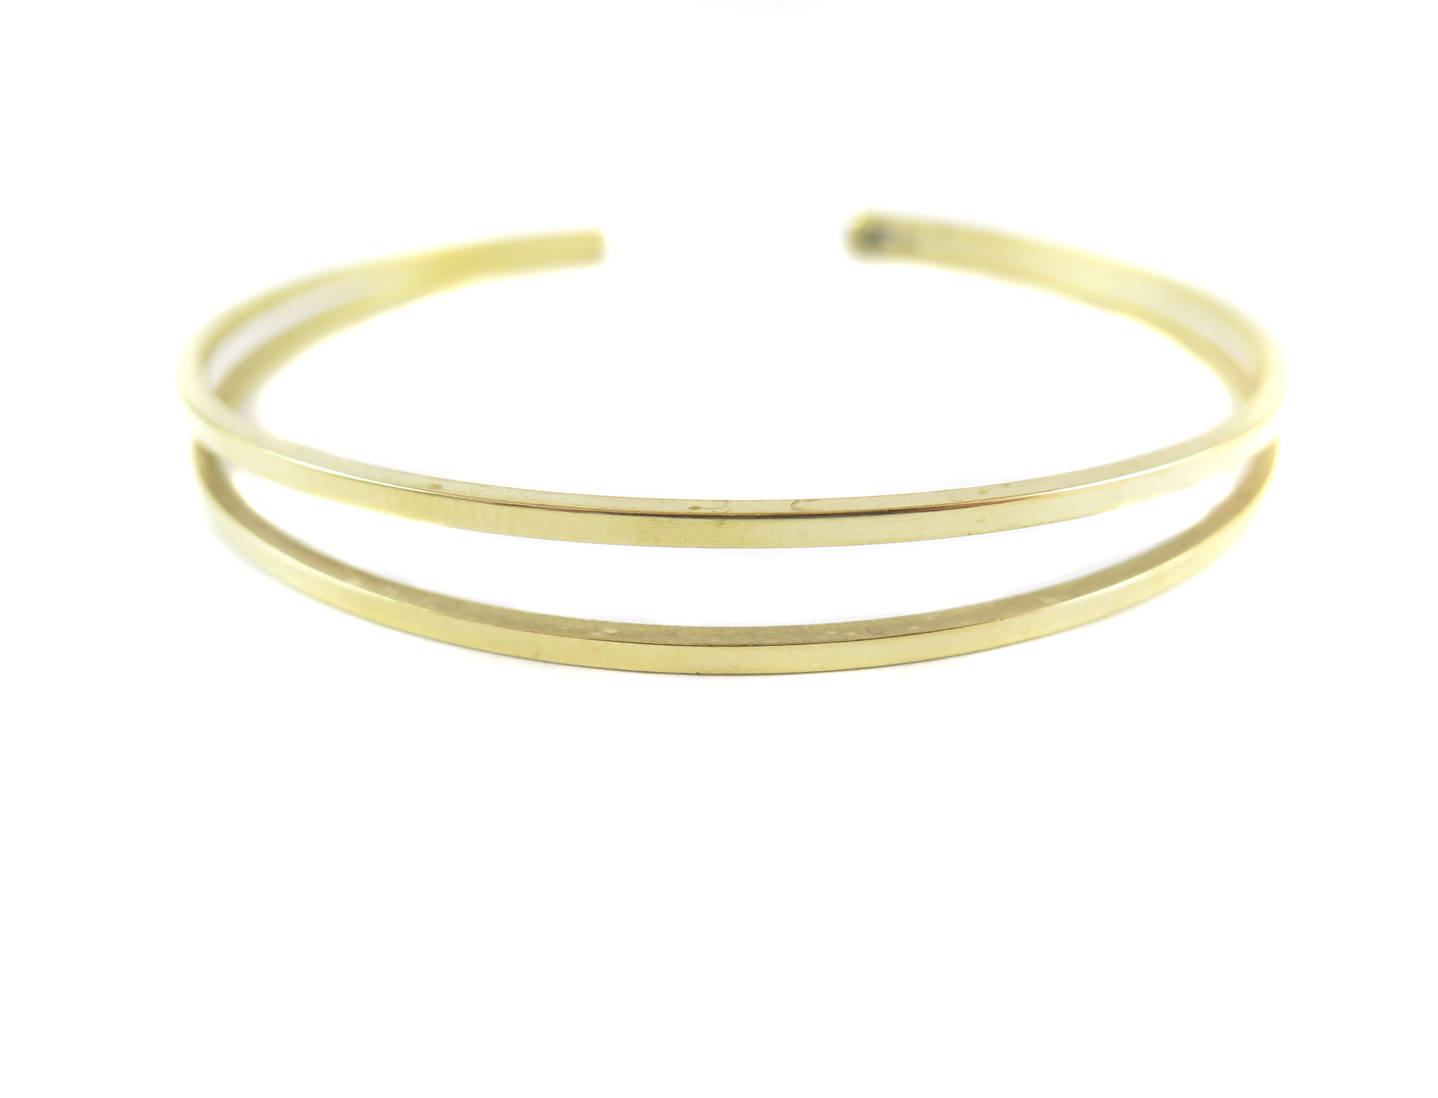 Square Wire Double Band Cuff Bracelet - Brooklyn Charm